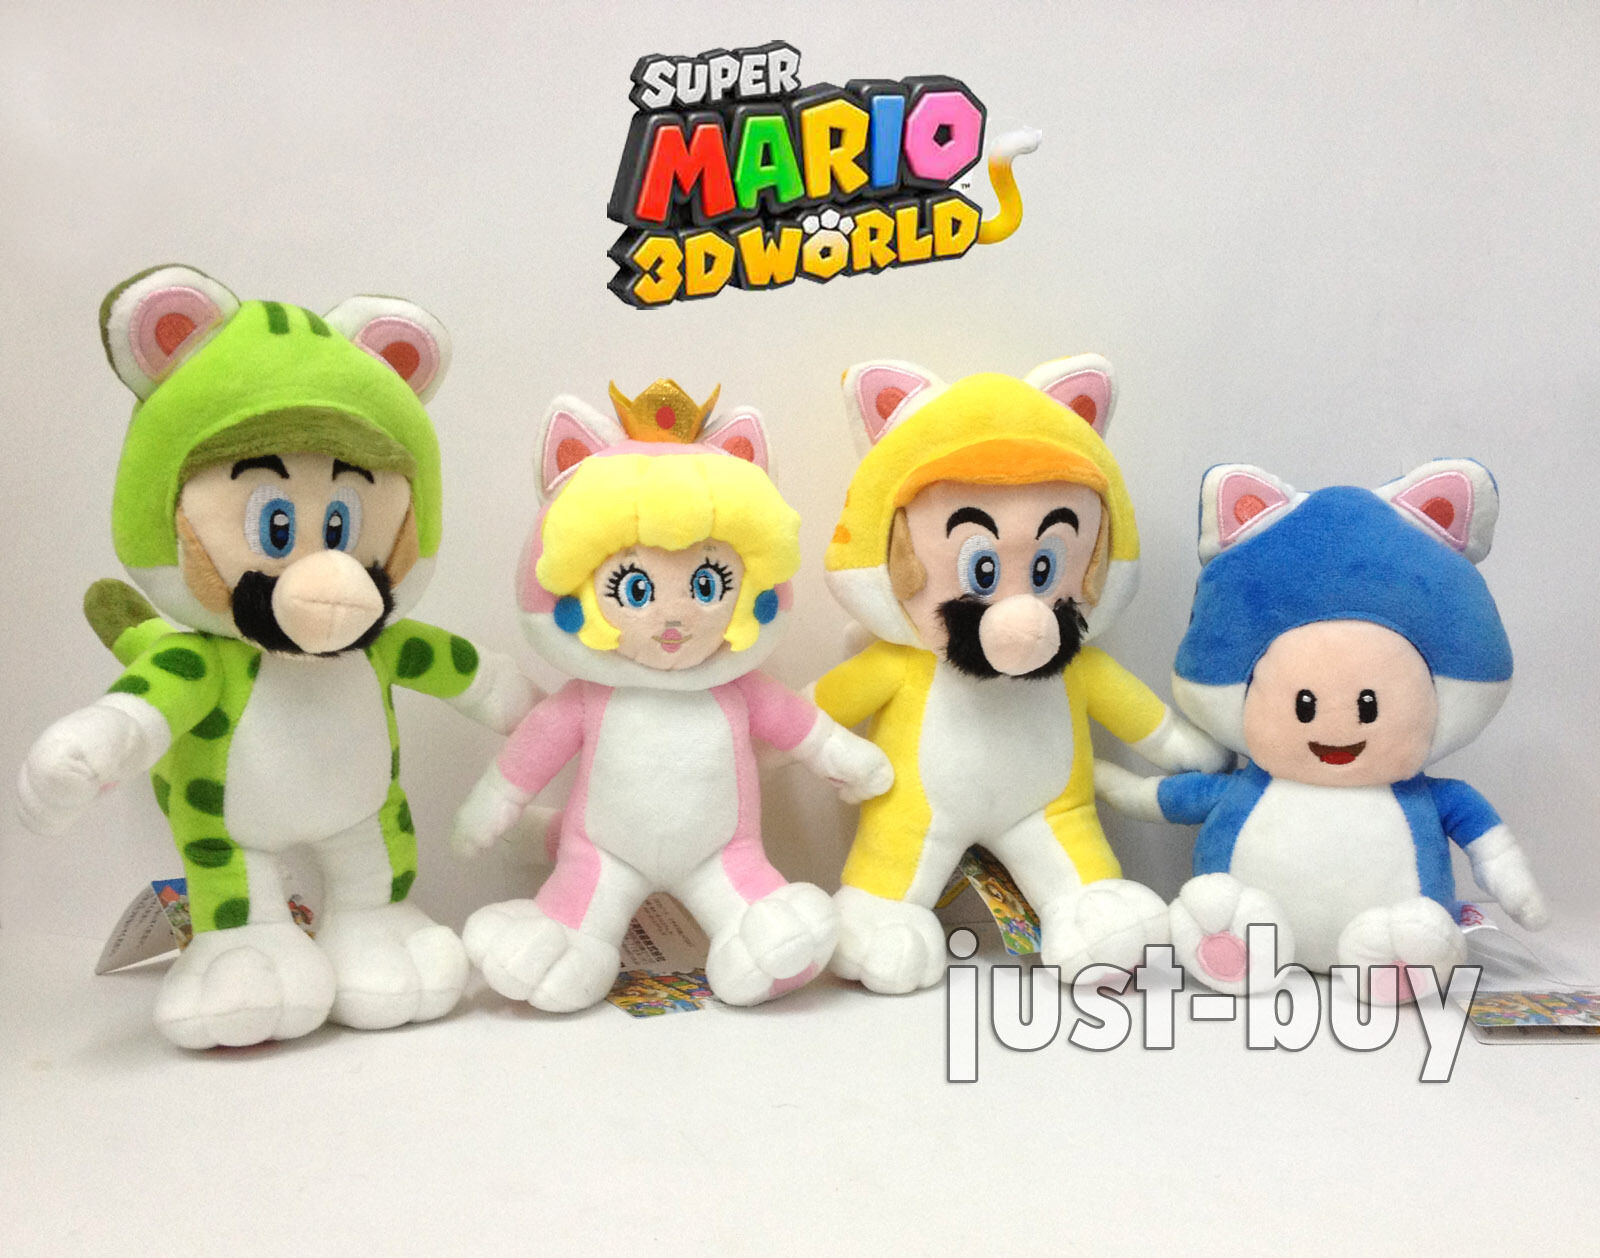 4X Super Mario 3D World Cat Mario Luigi Princess Peach Toad Plush Soft Toy 9.5